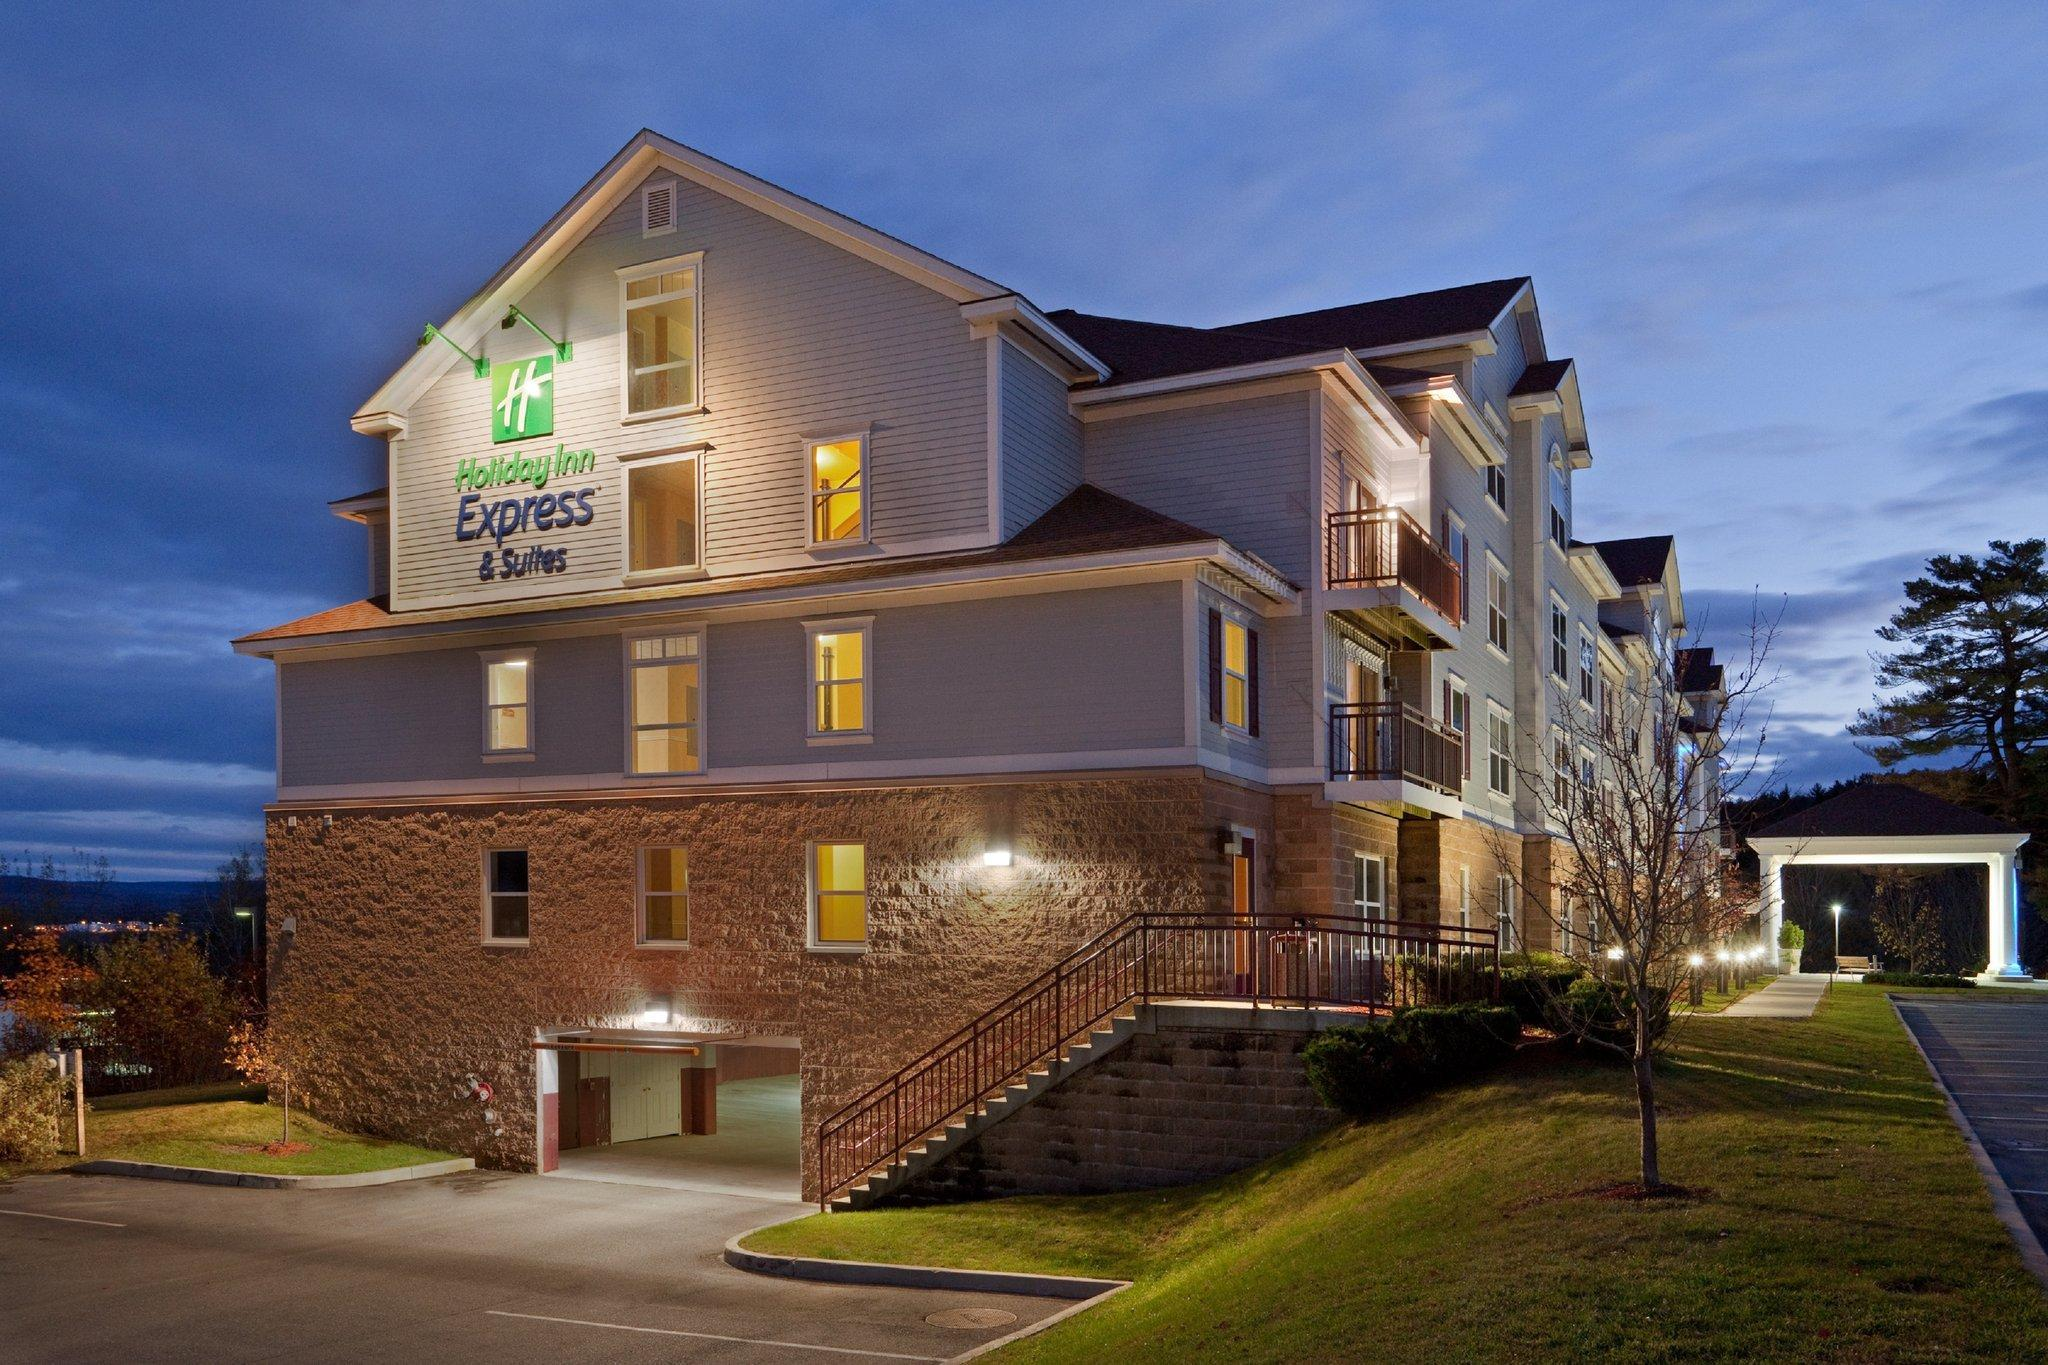 Holiday Inn Express Hotel And Suites White River Junction